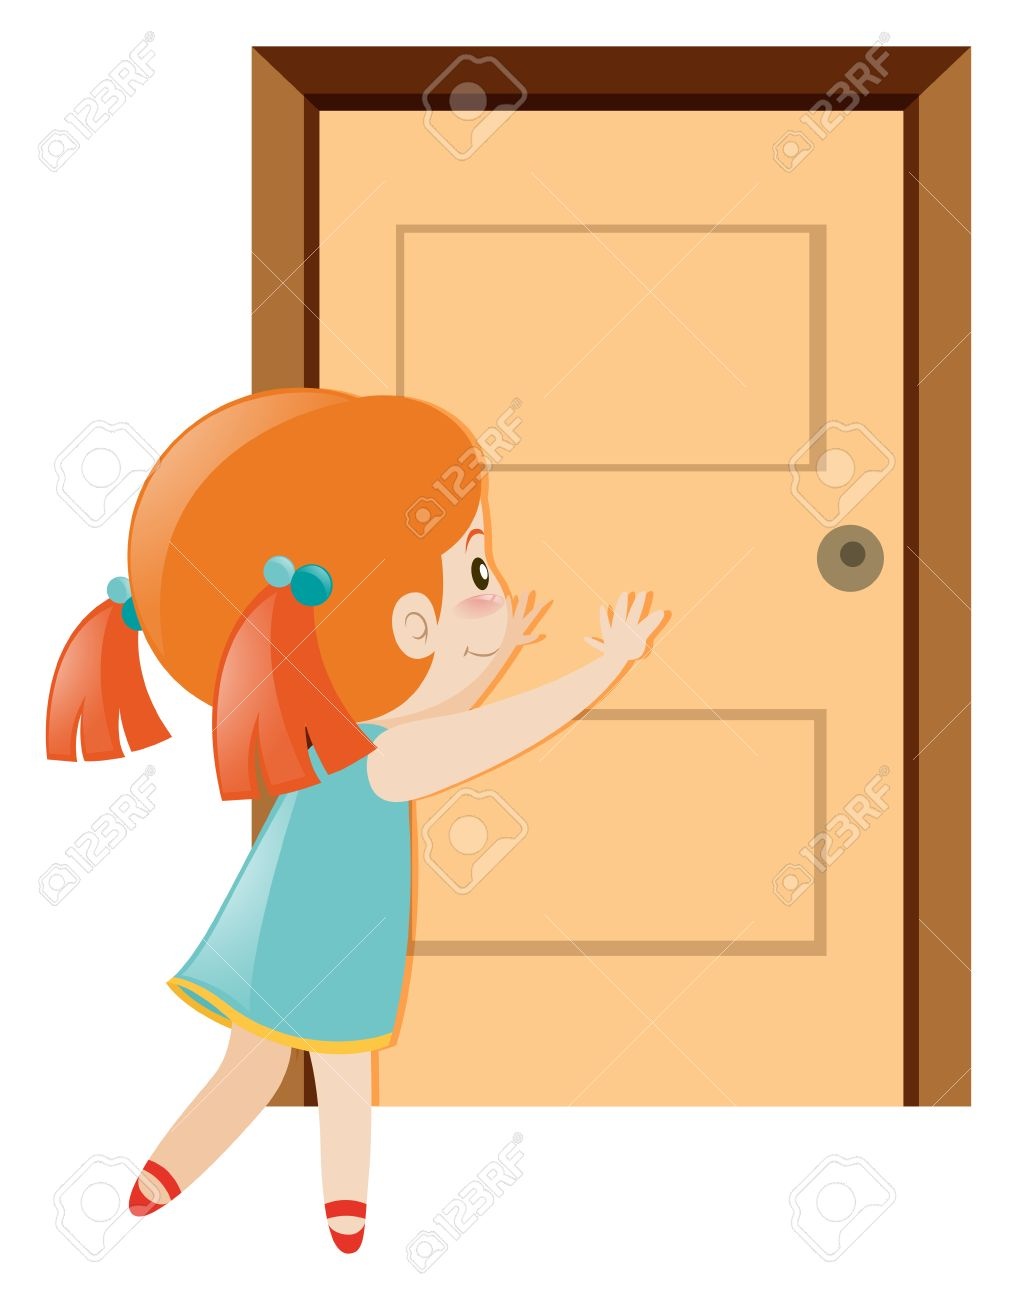 Little girl pushing the door open illustration.